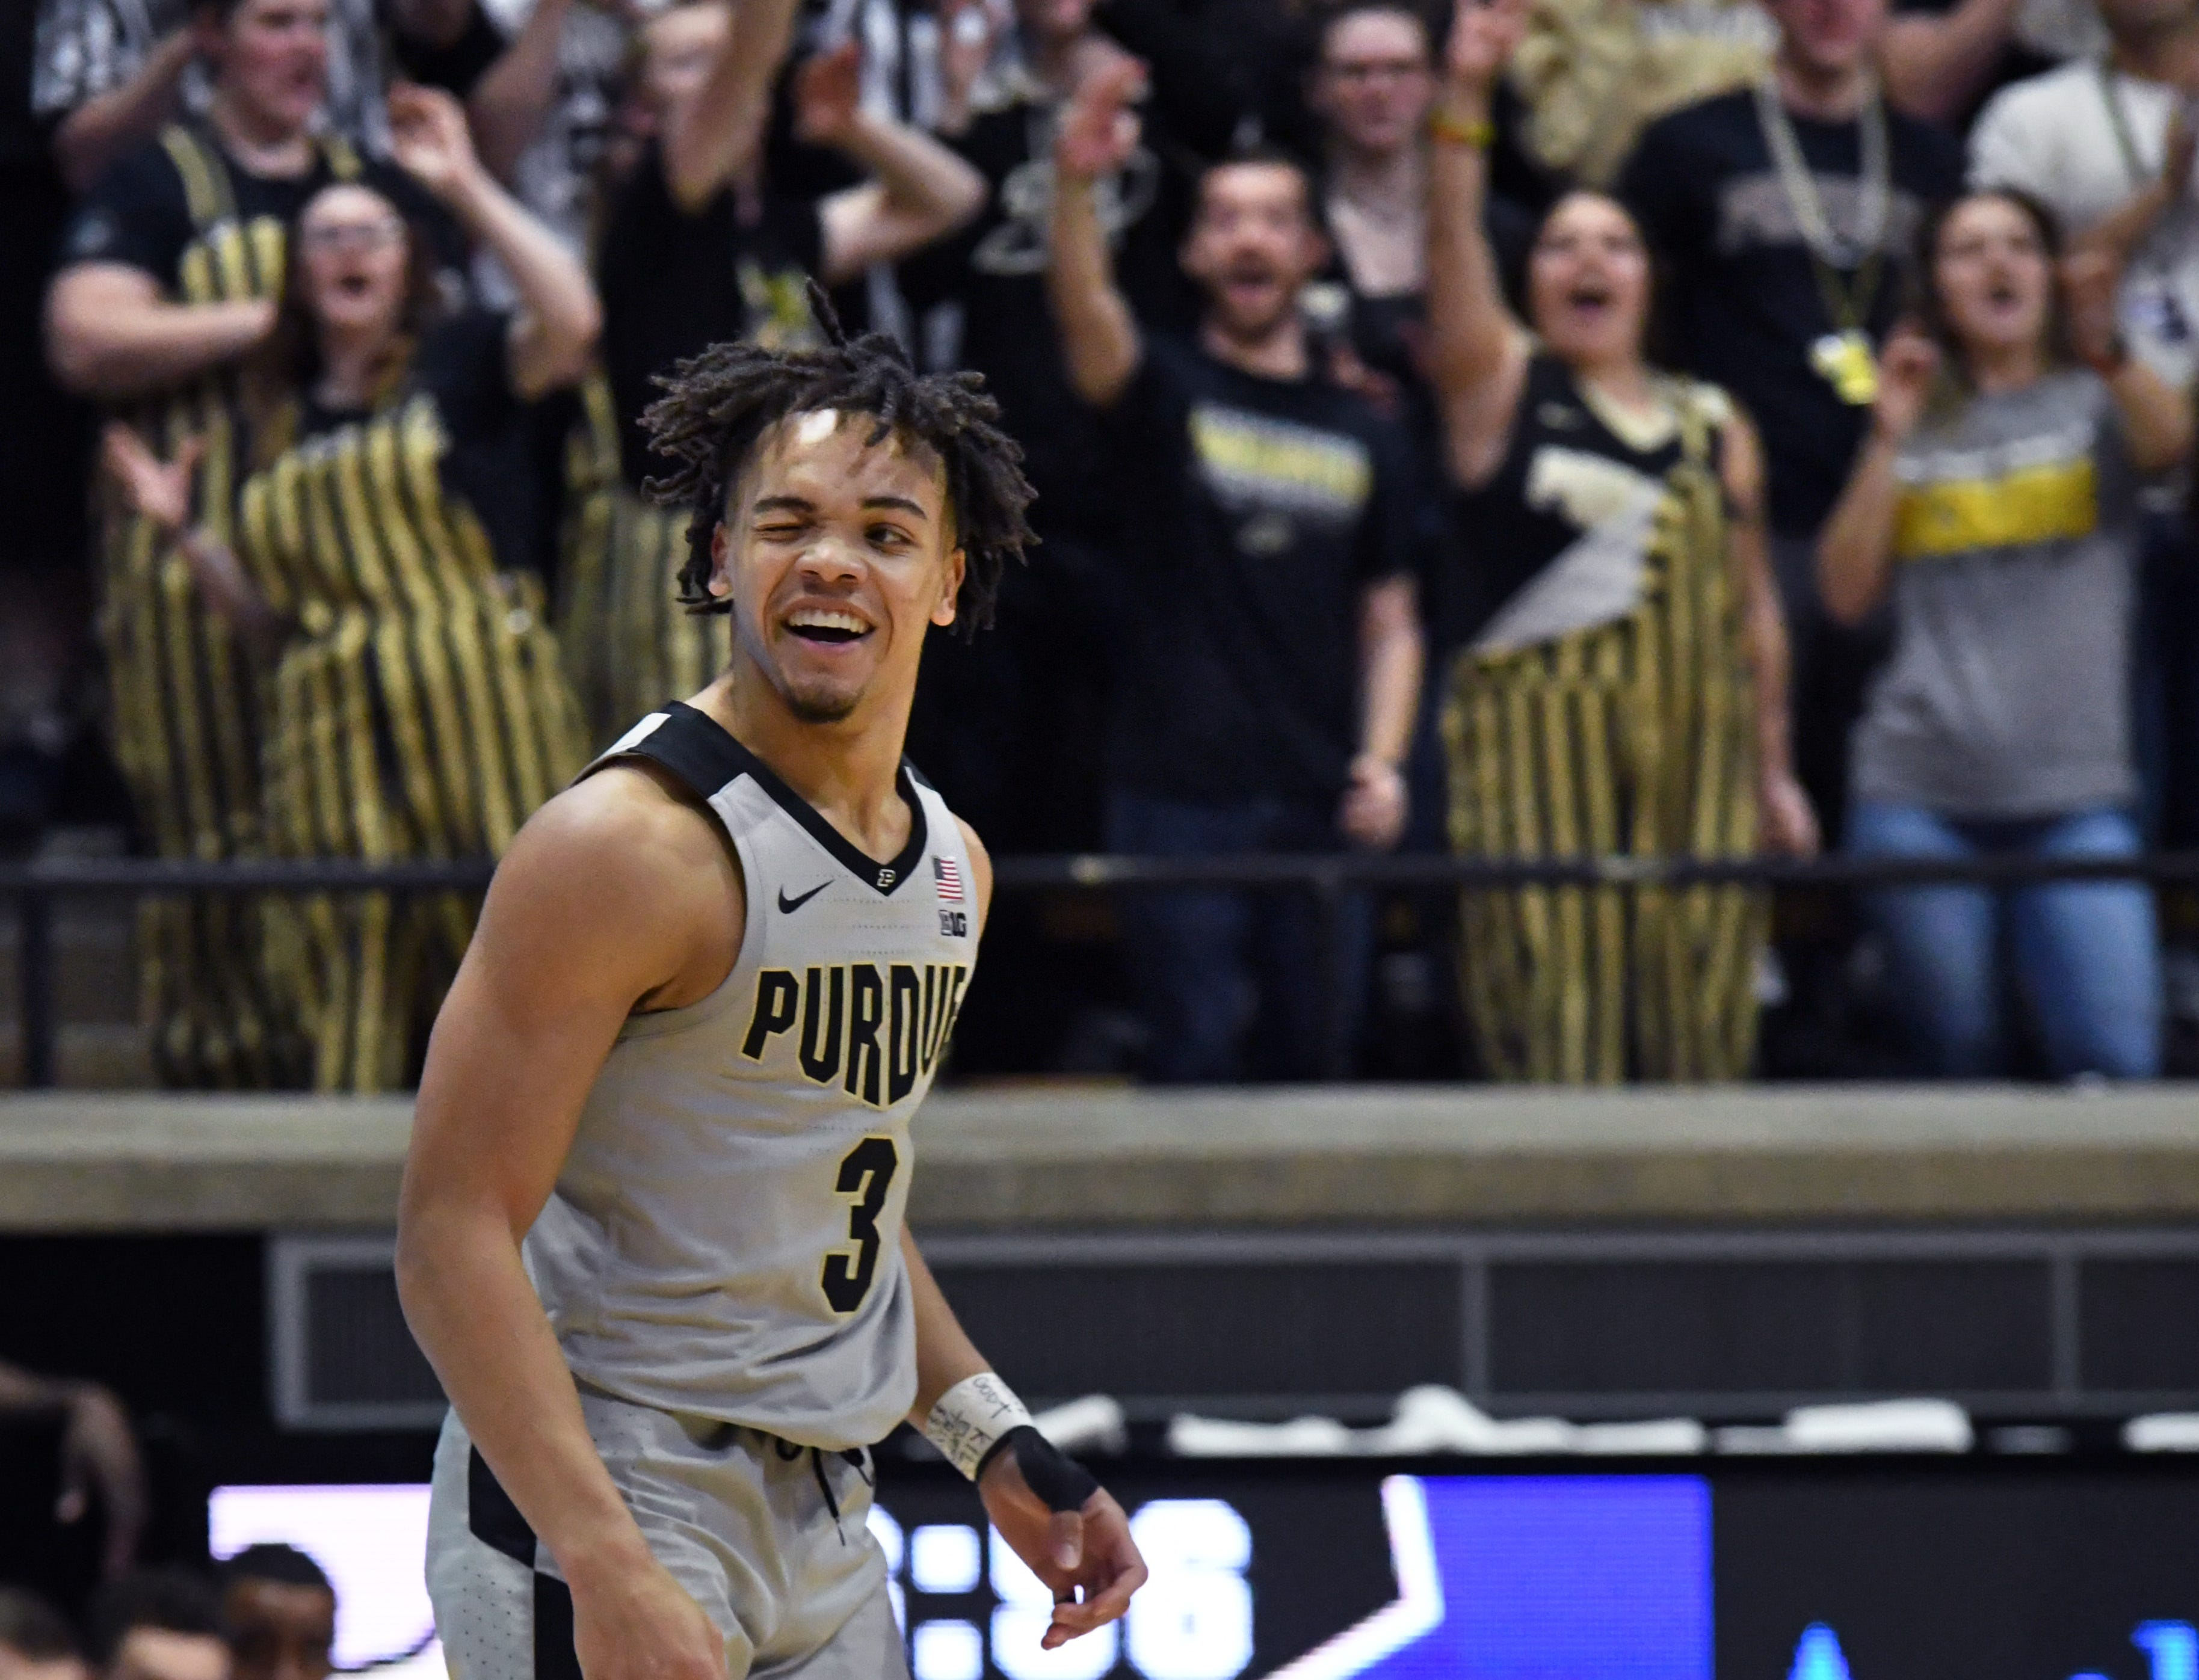 By Frank Oliver for the Journal and Courier --Purdue's Carsen Edwards winks at Penn State after hitting a three-point shot in the Boilers' 76-64 win over Penn State at Purdue on Saturday February 16, 2019.